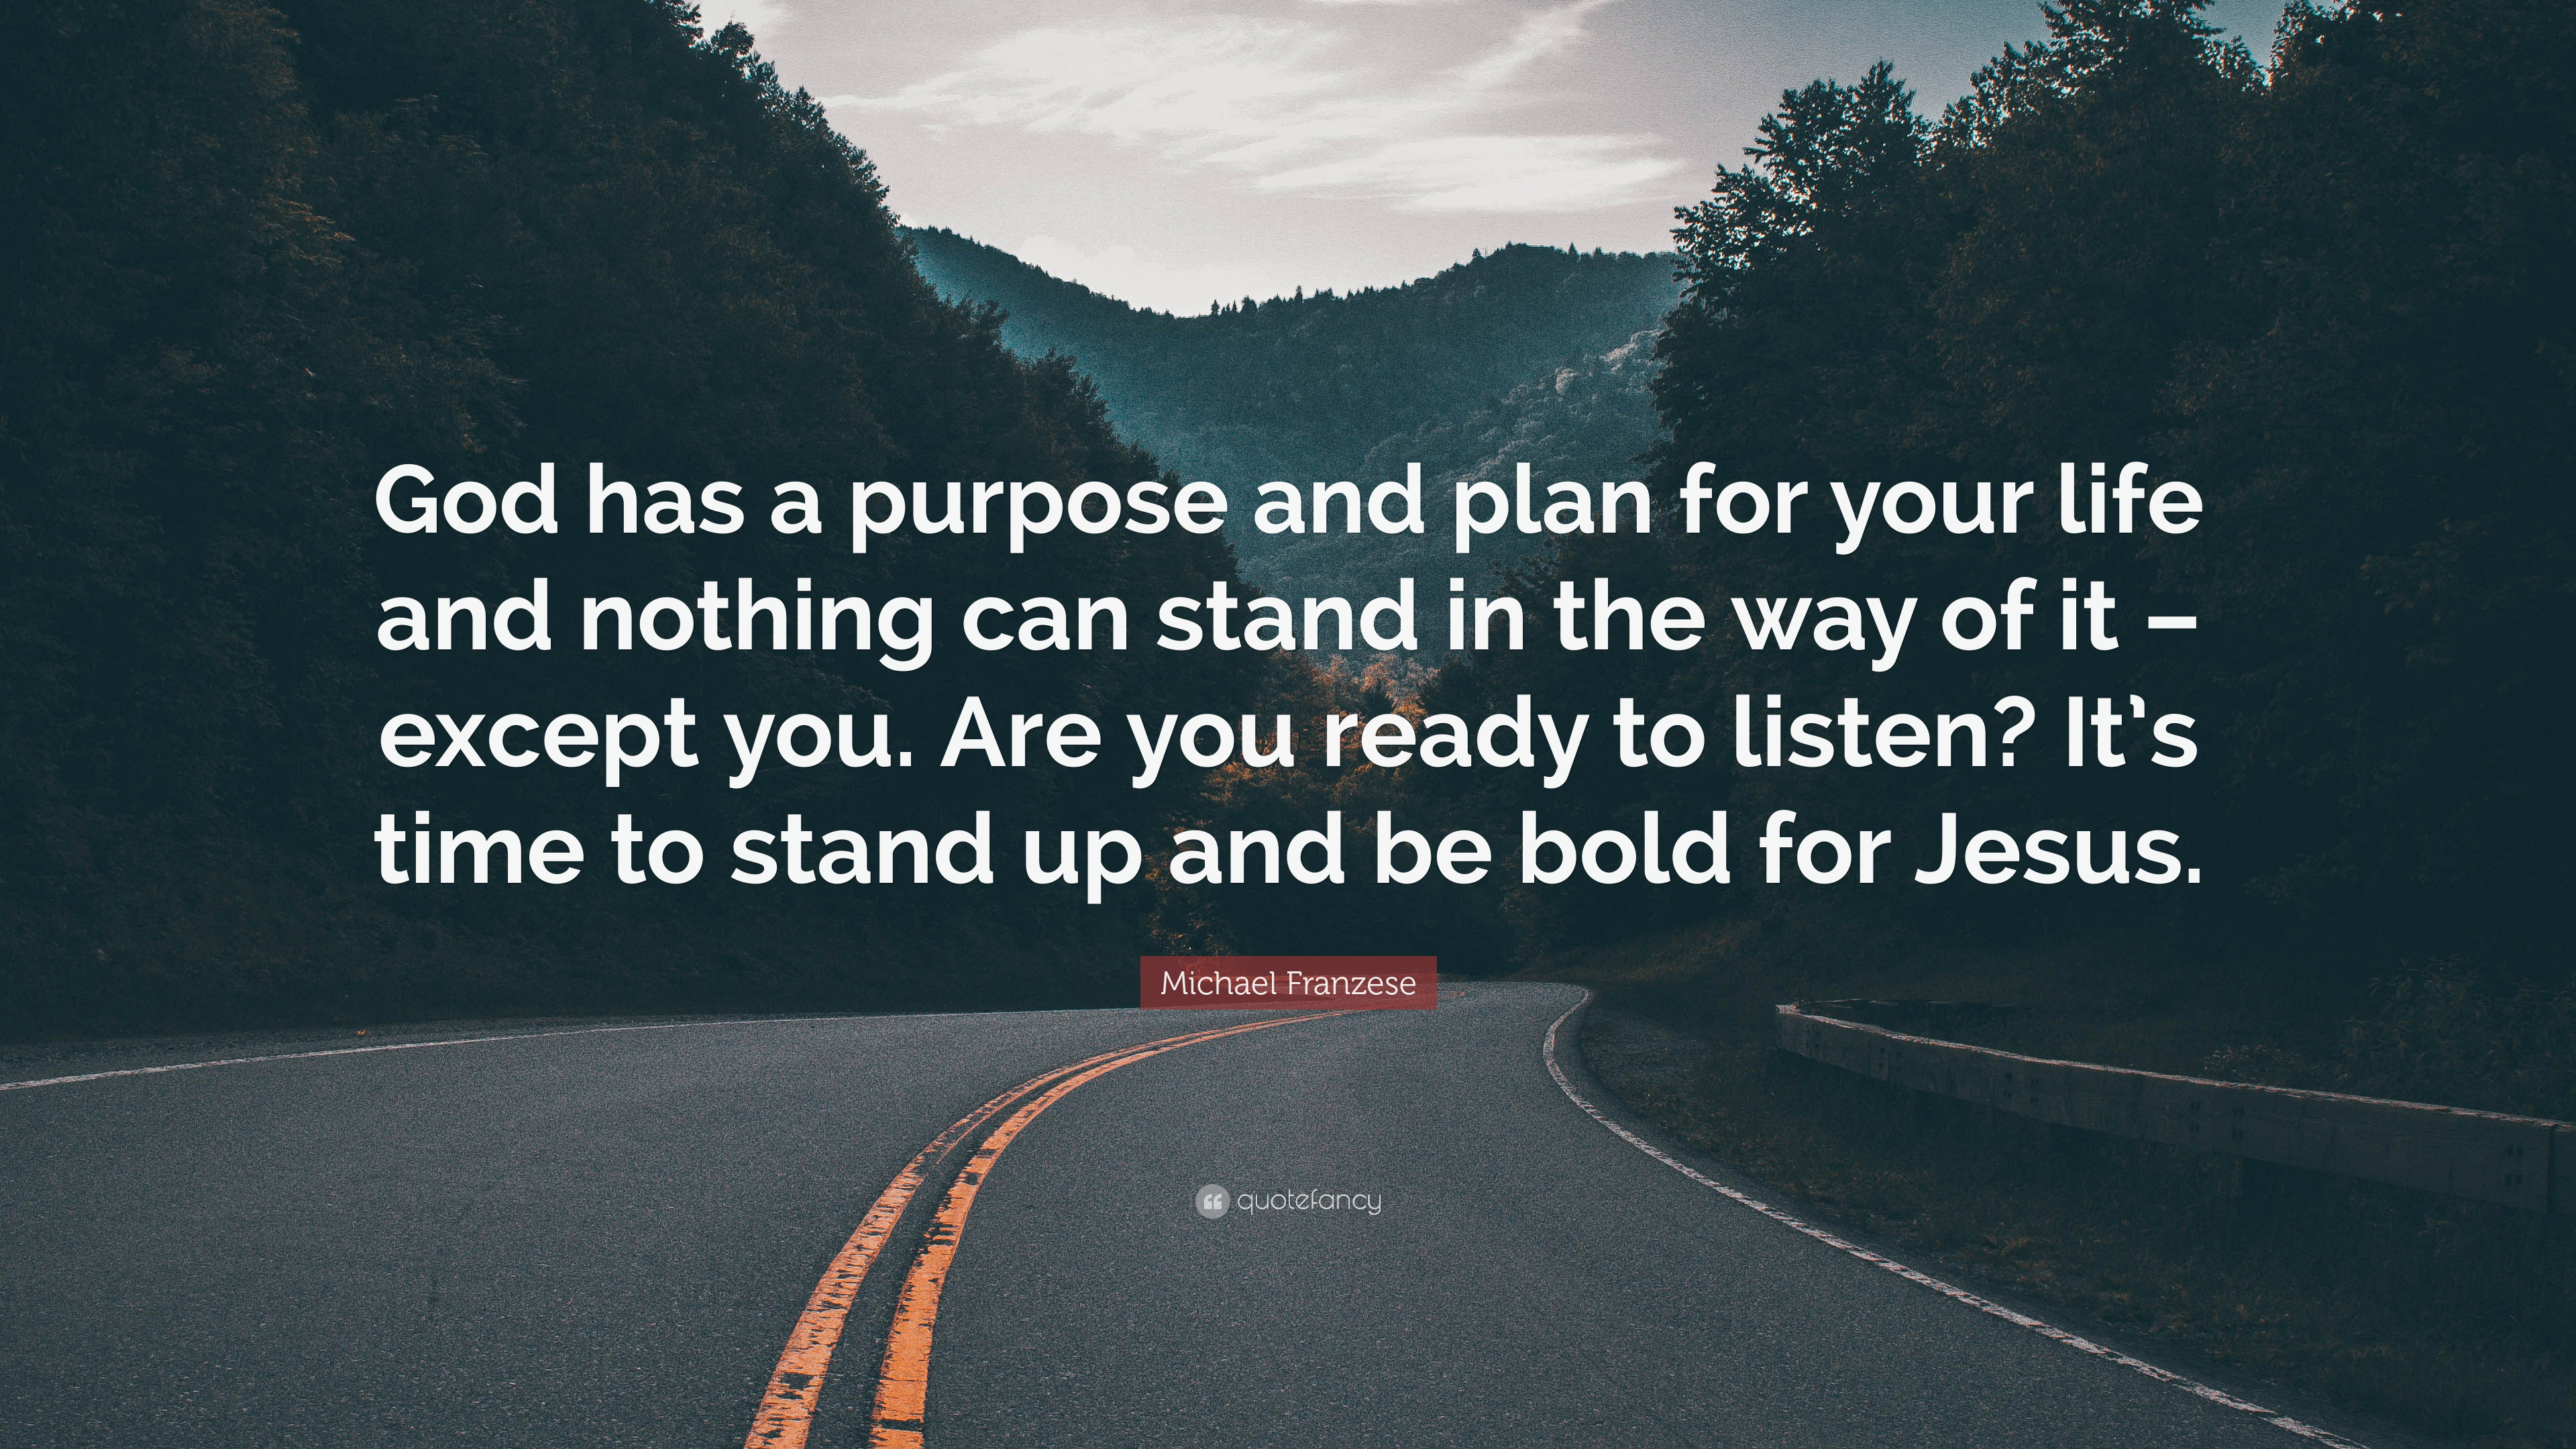 Michael Franzese Quote God Has A Purpose And Plan For Your Life